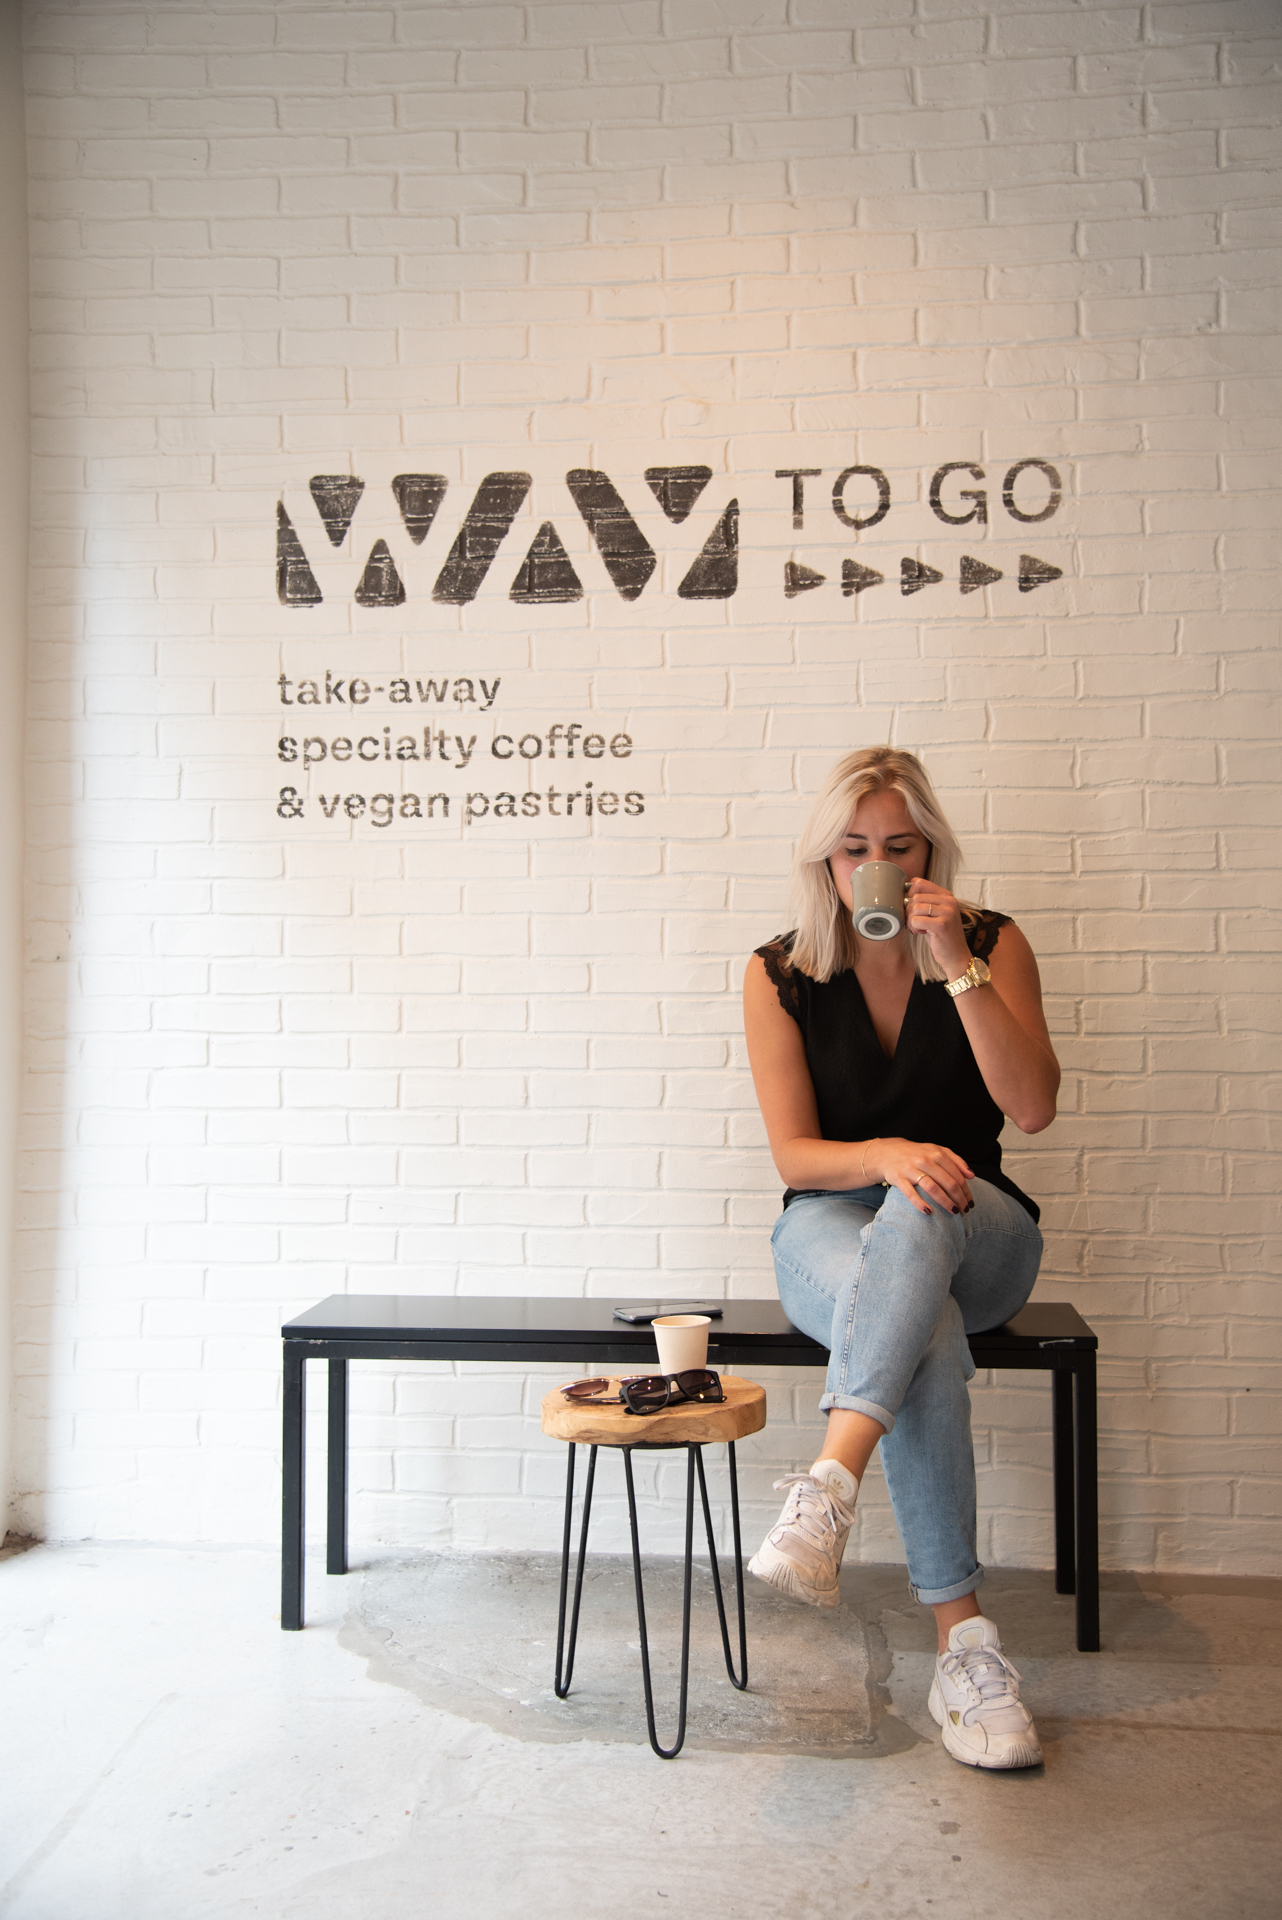 WAY Coffee in Gent